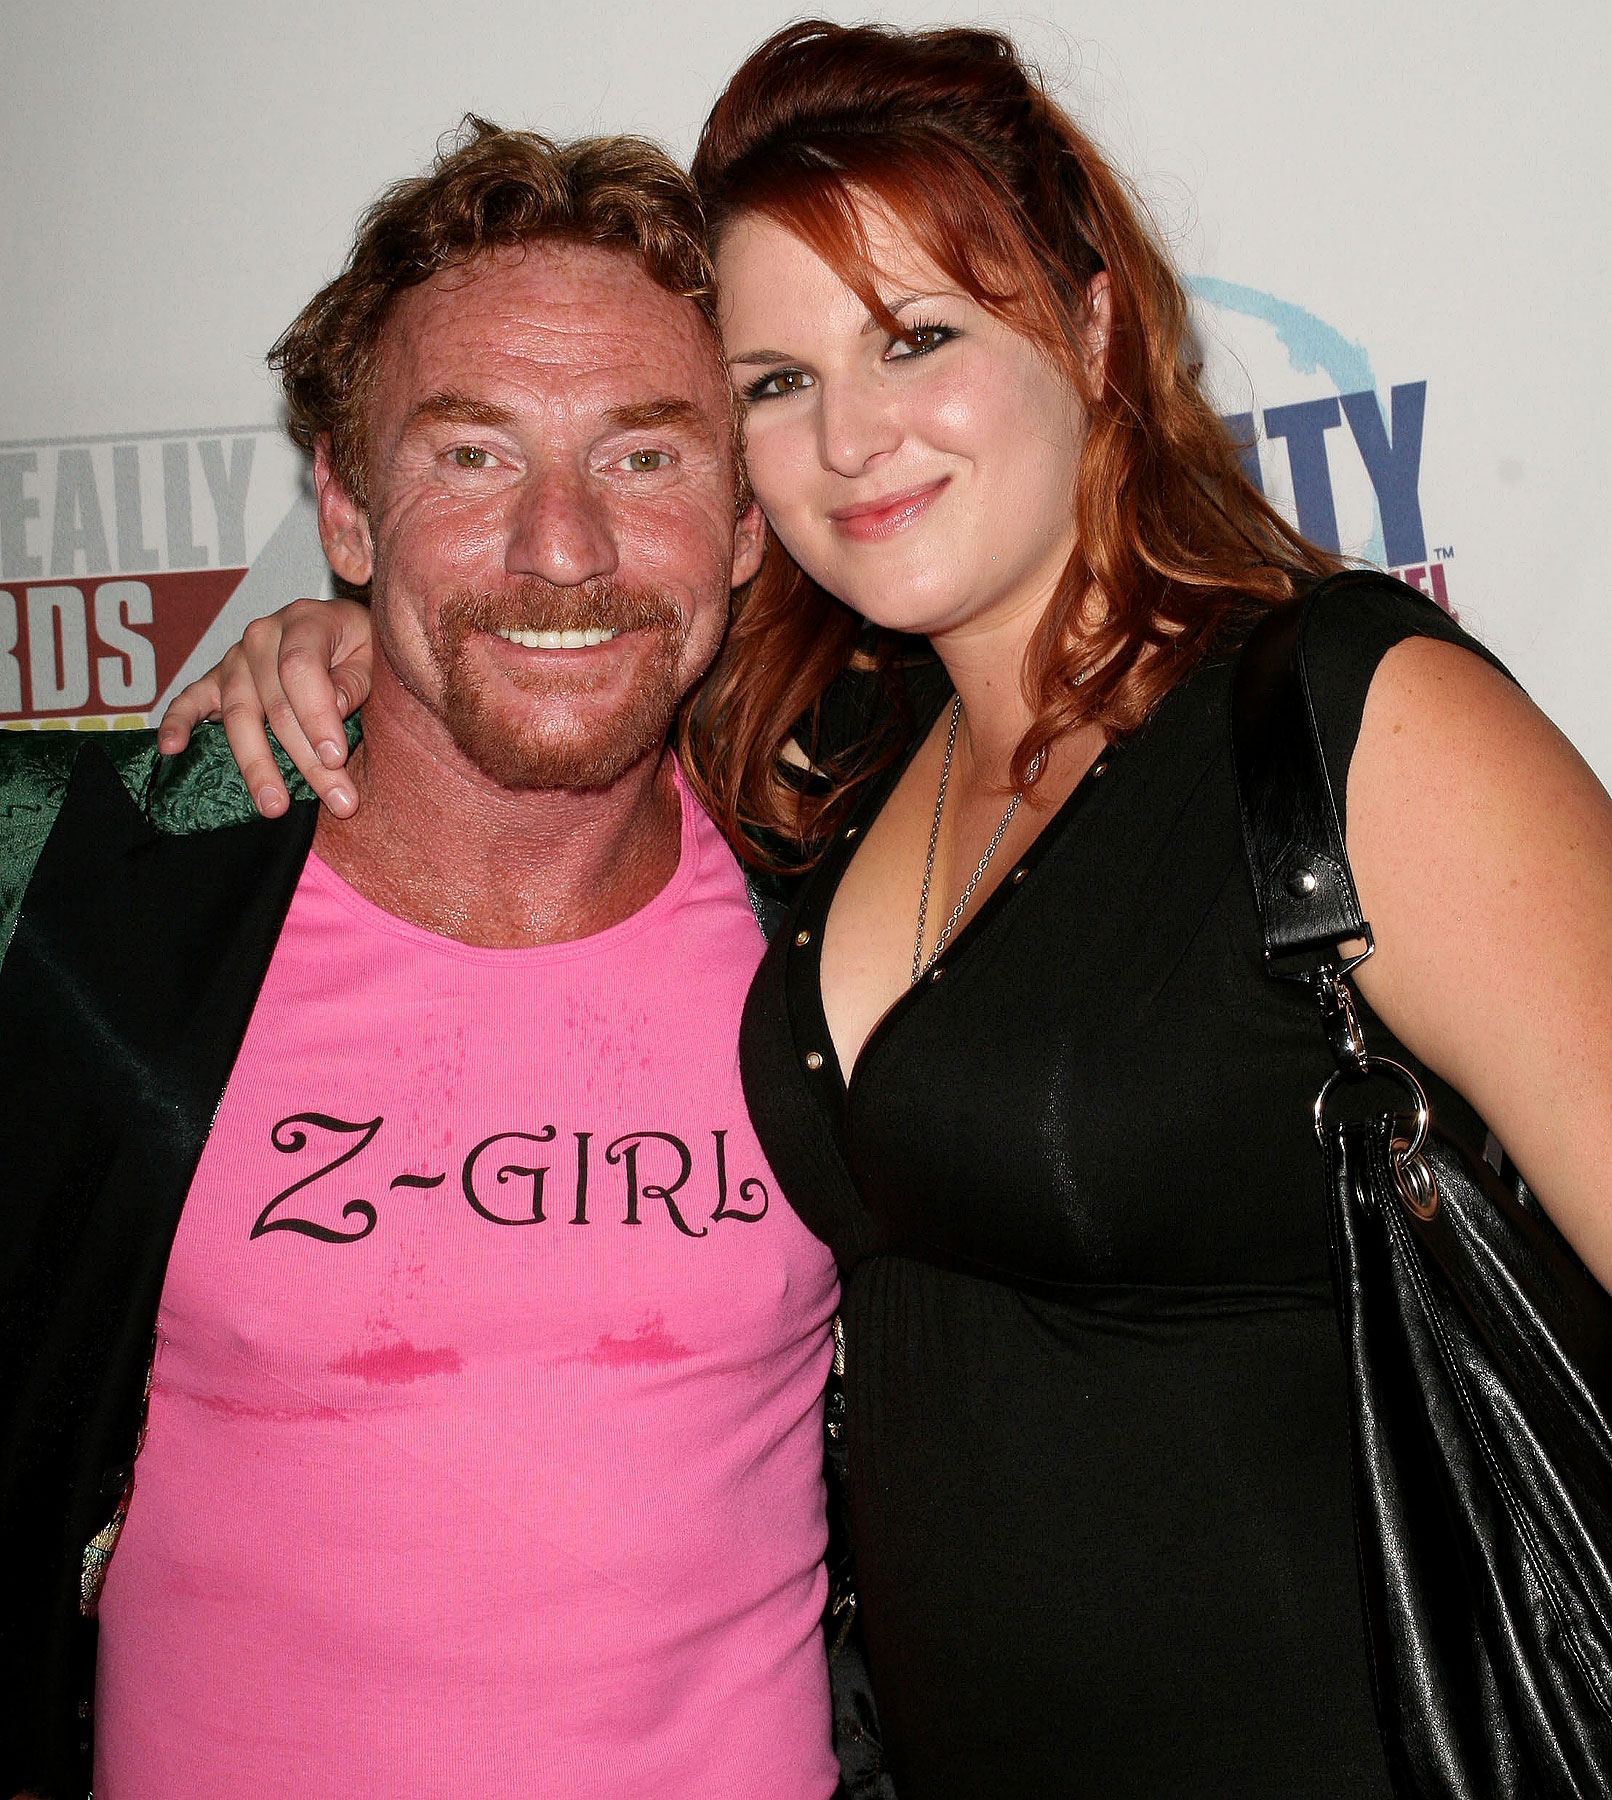 Danny Bonaduce Is Getting Hitched!